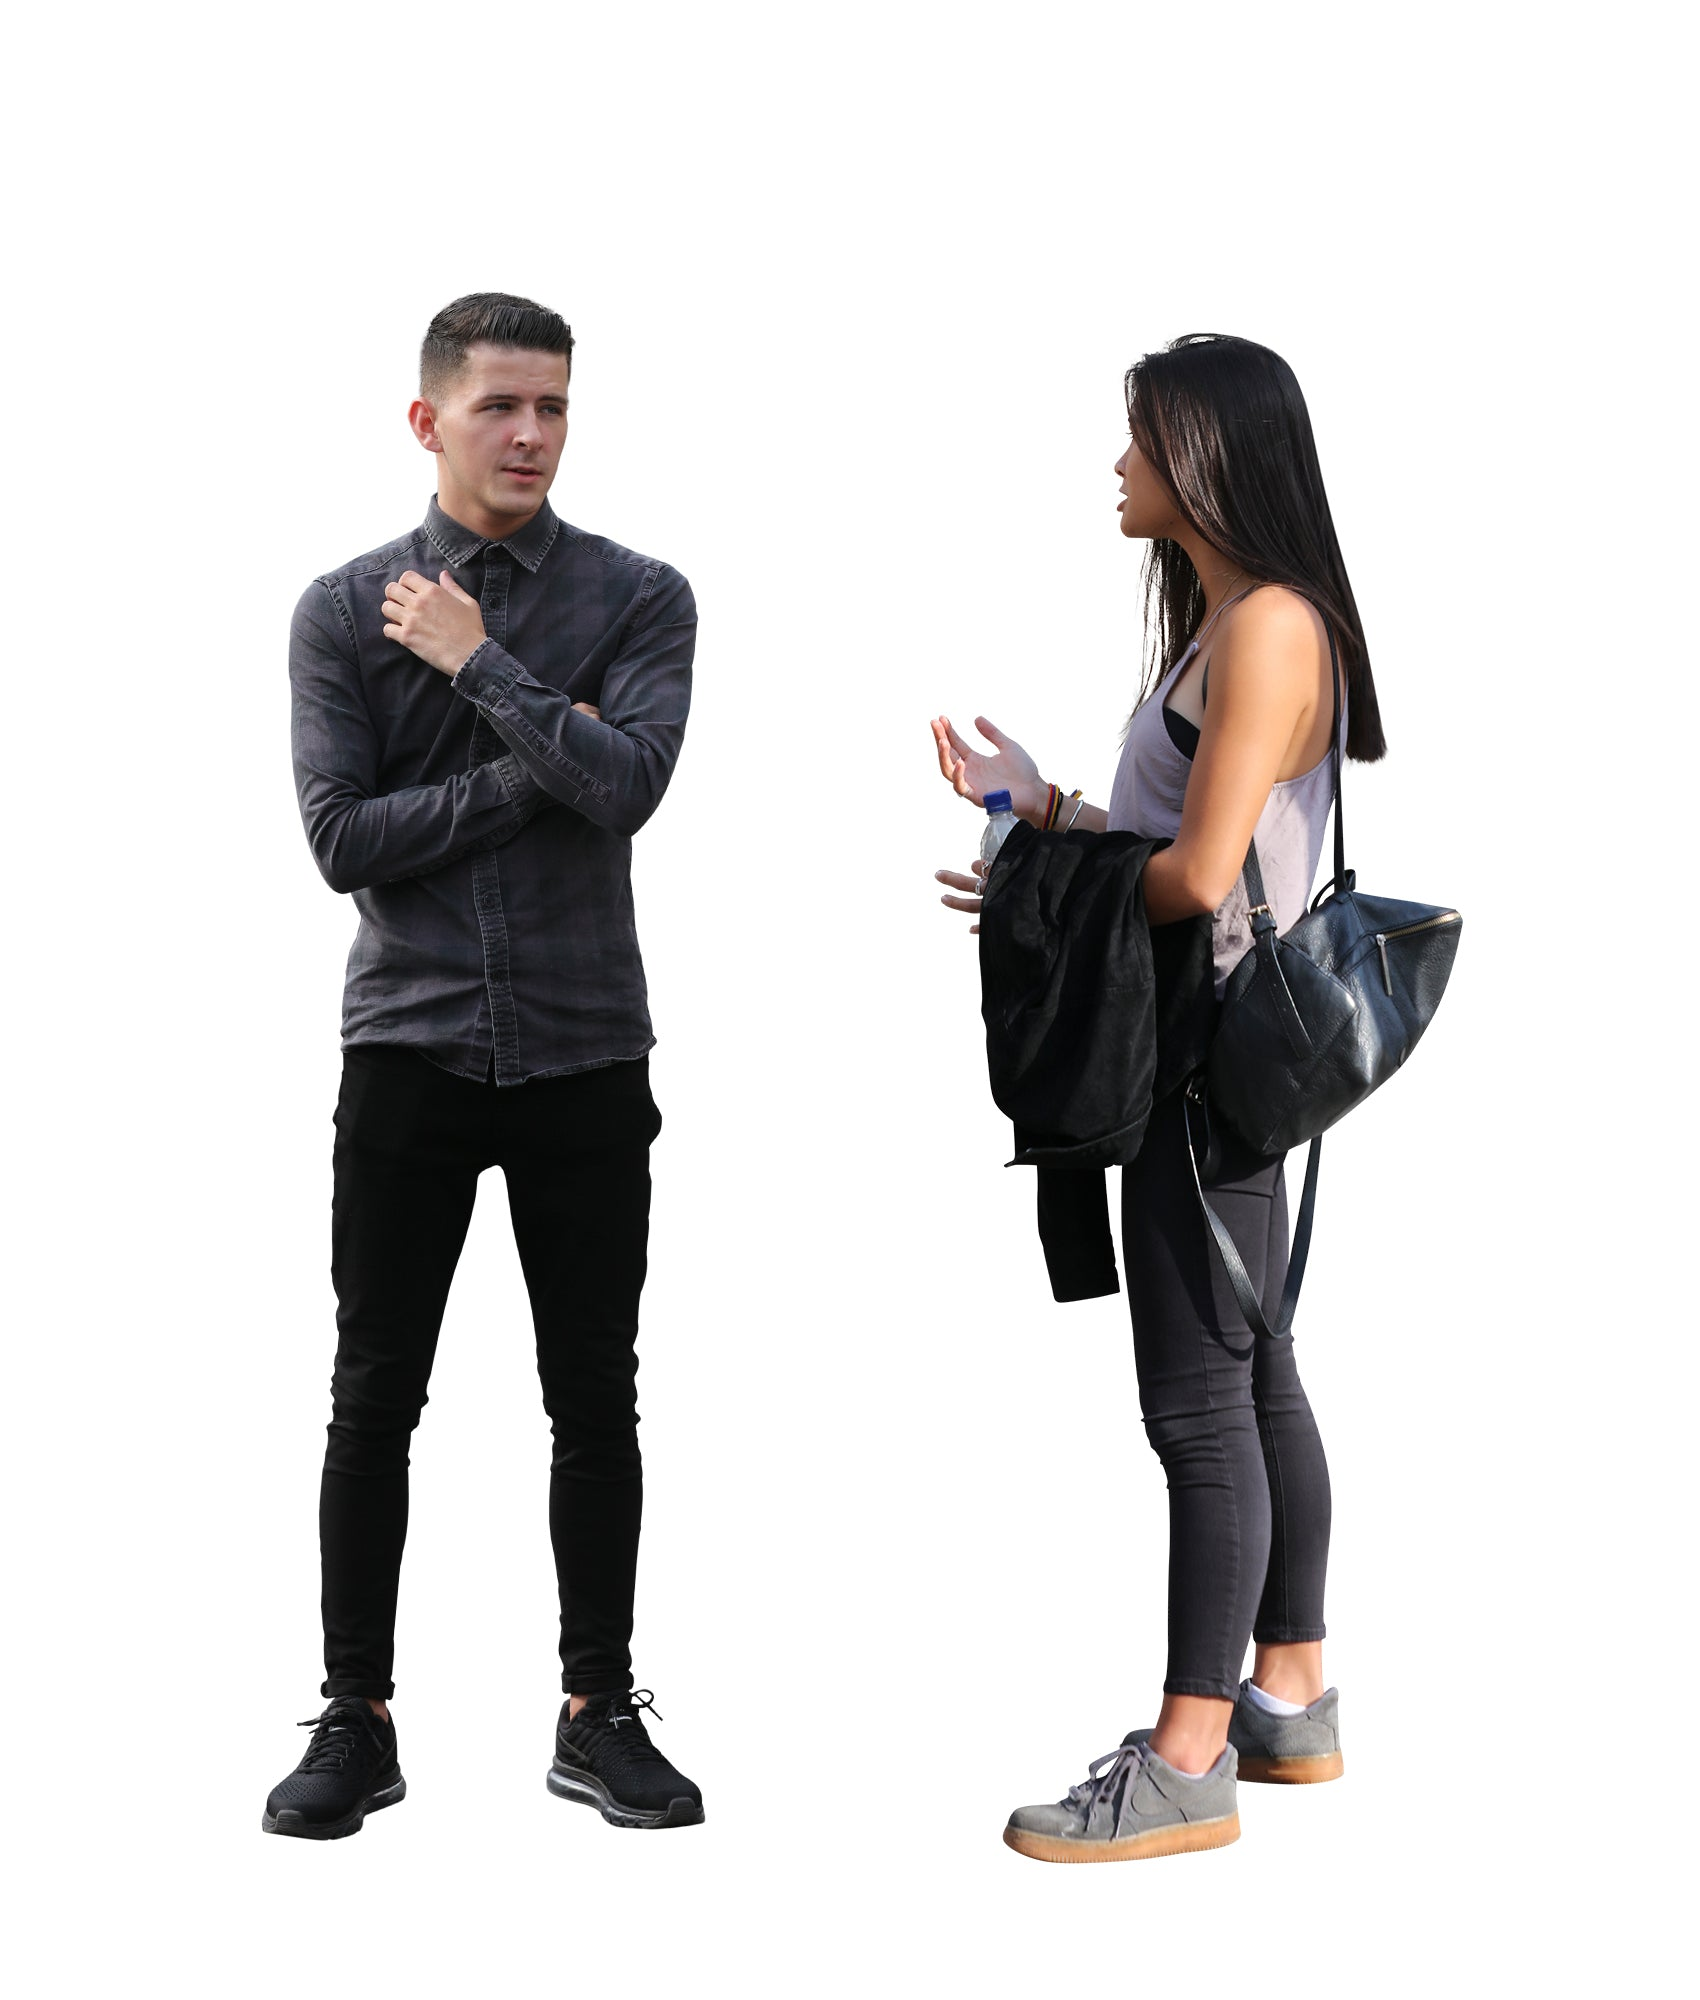 Cutout People Special - 1000 cutouts